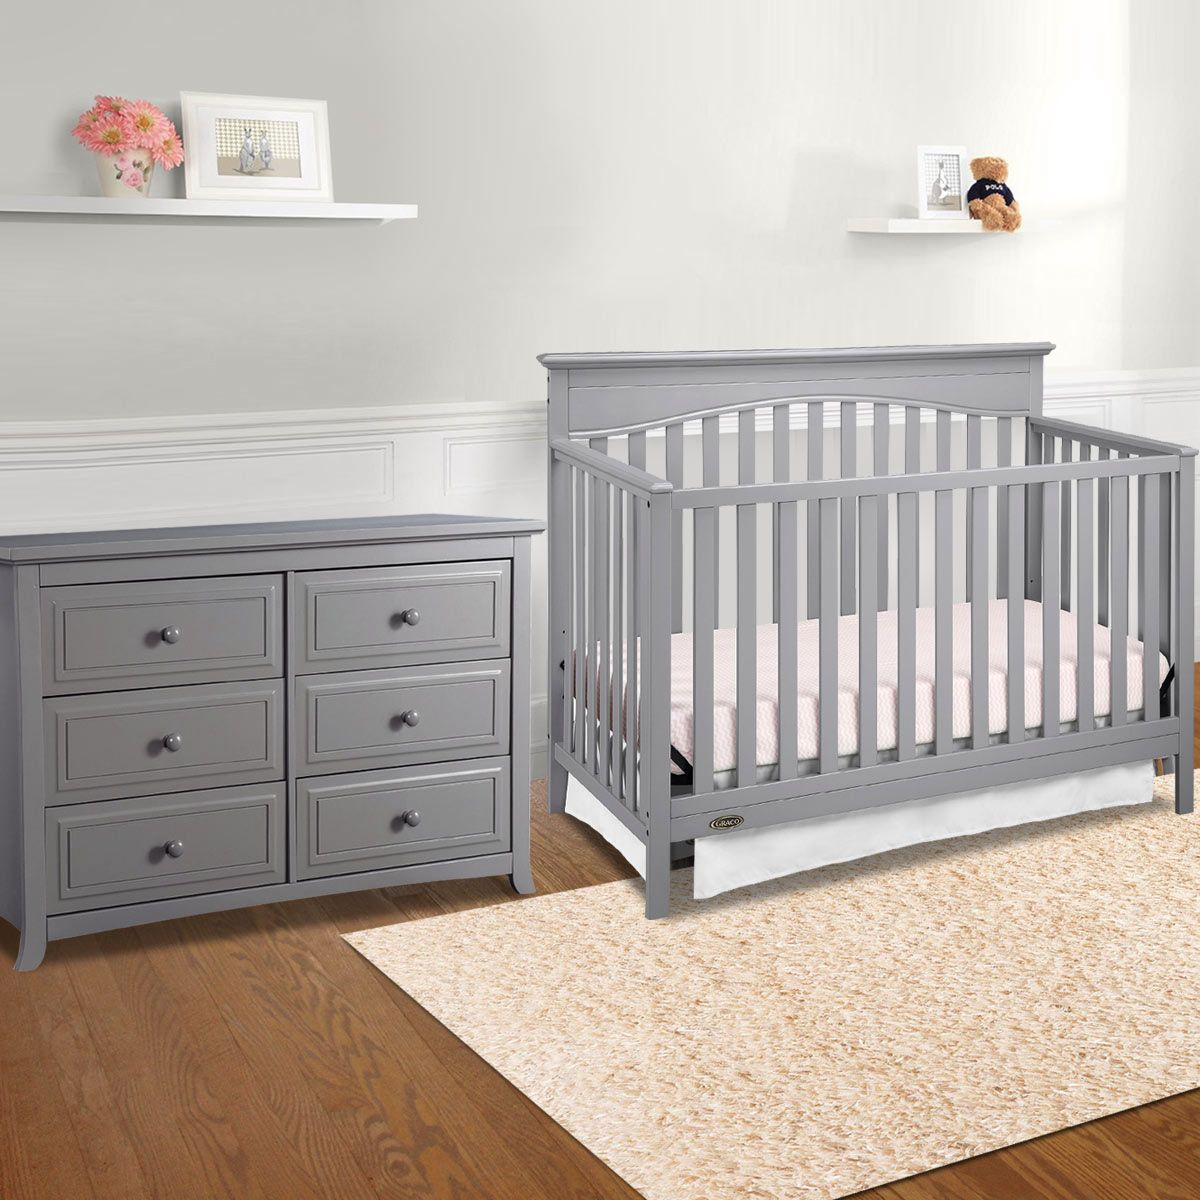 Charmant 30 Baby Furniture Charlotte Nc   Bedroom Interior Decorating Check More At  Http://